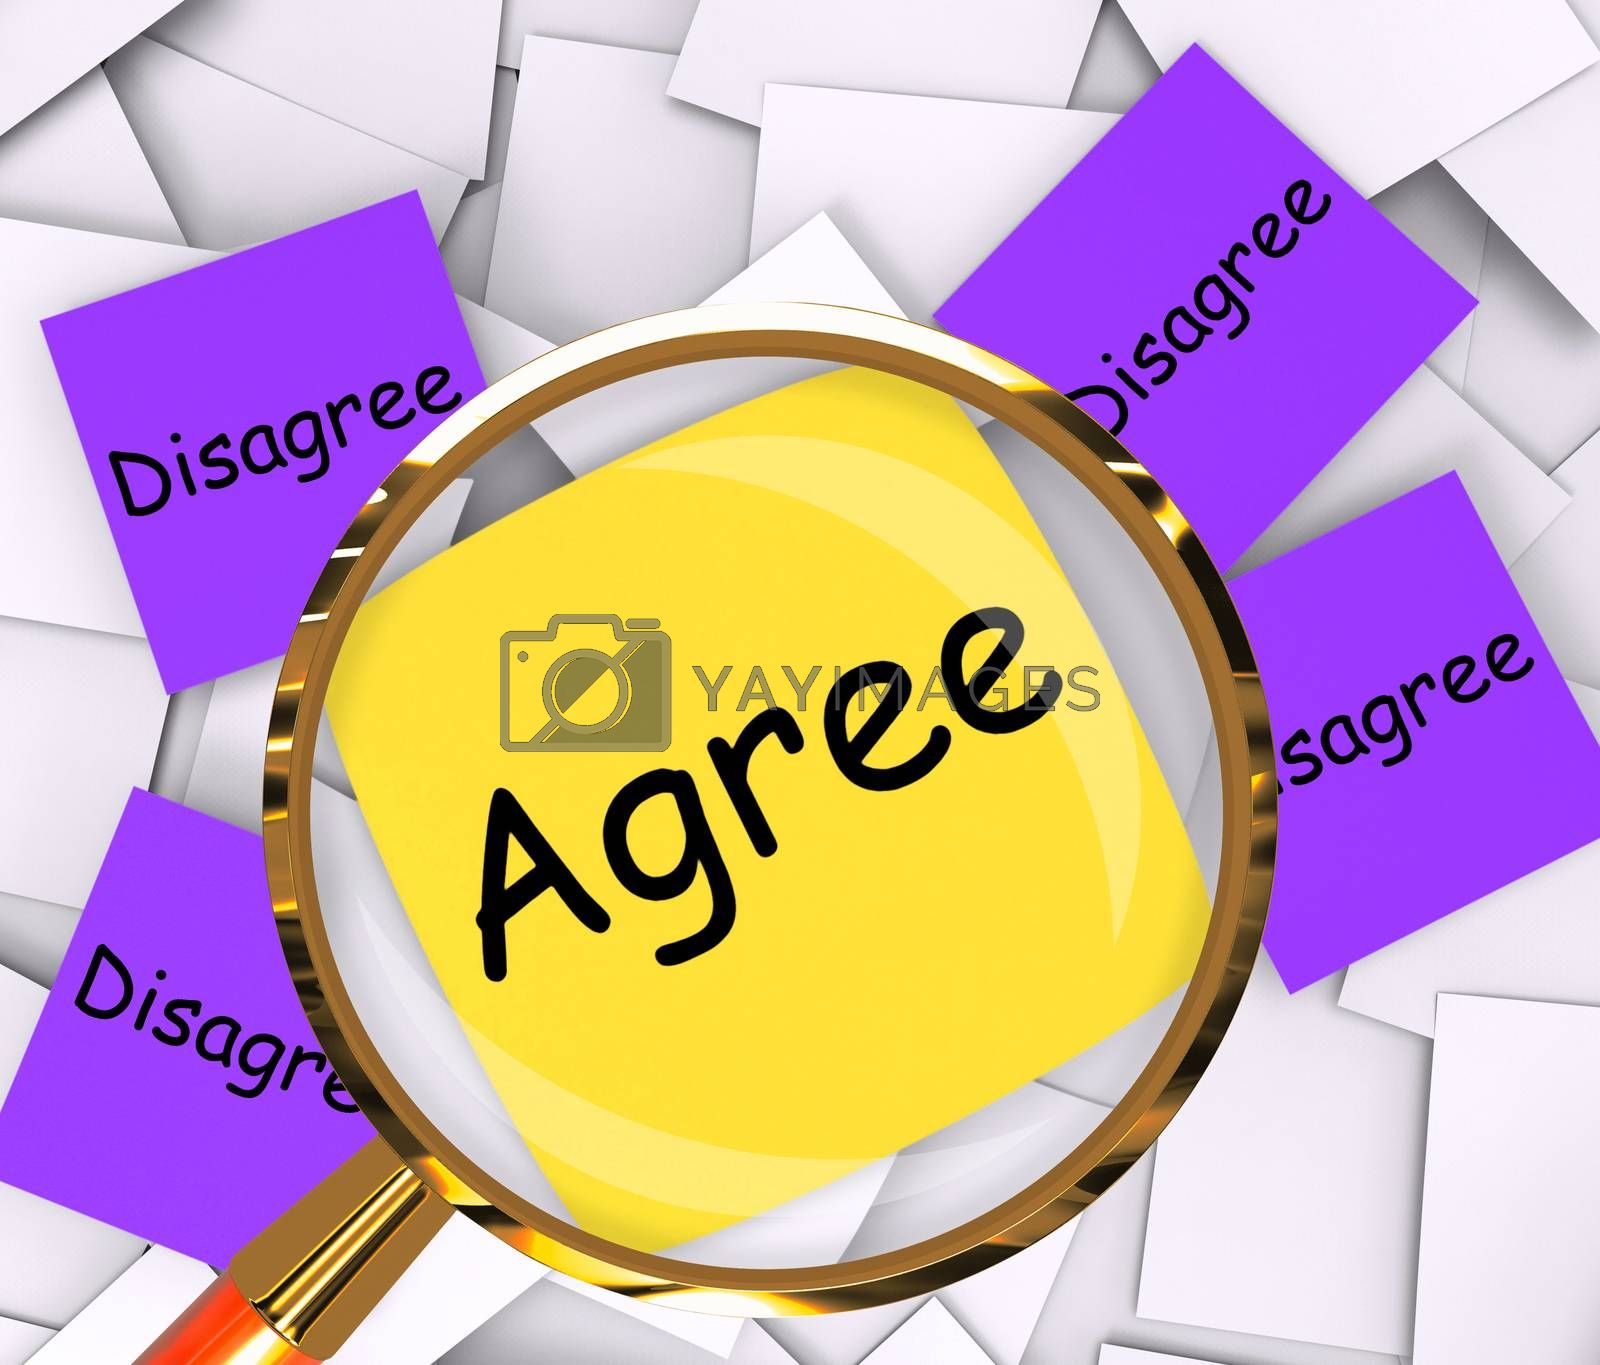 Agree Disagree Post-It Papers Mean Opinion Agreement Or Disagree by stuartmiles